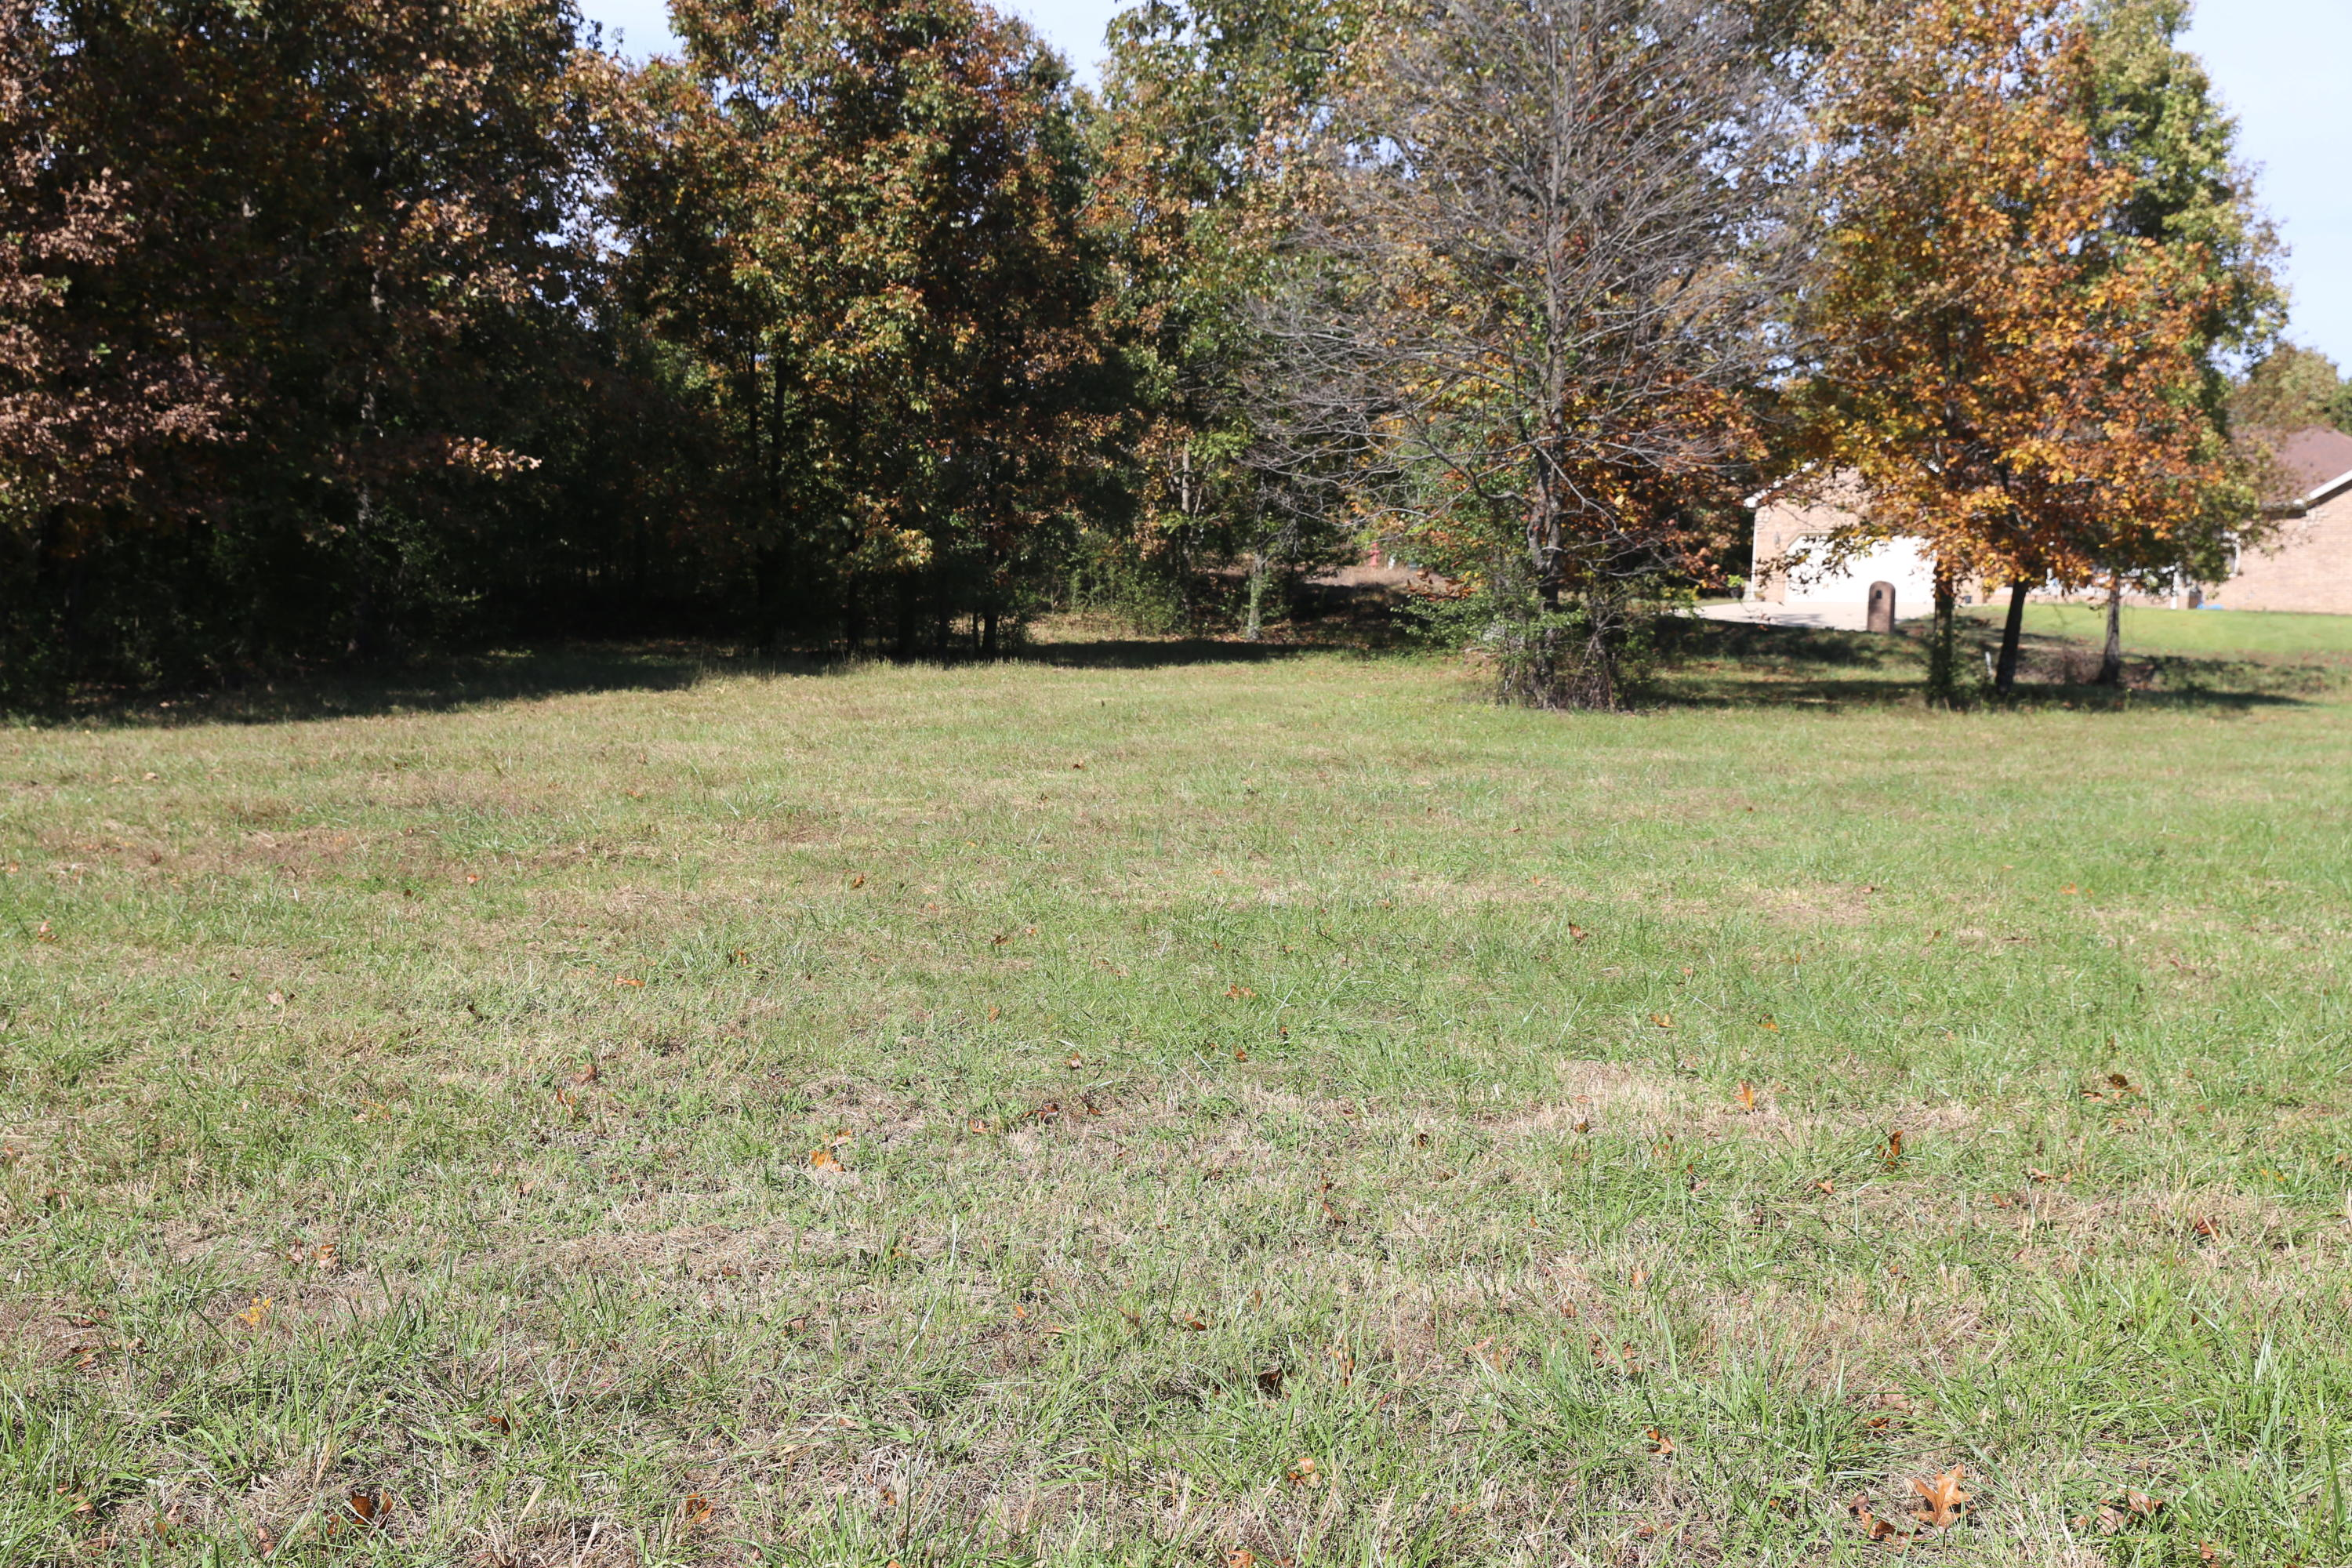 000 Wild Turkey Block 1 Lot 3 Property Photo